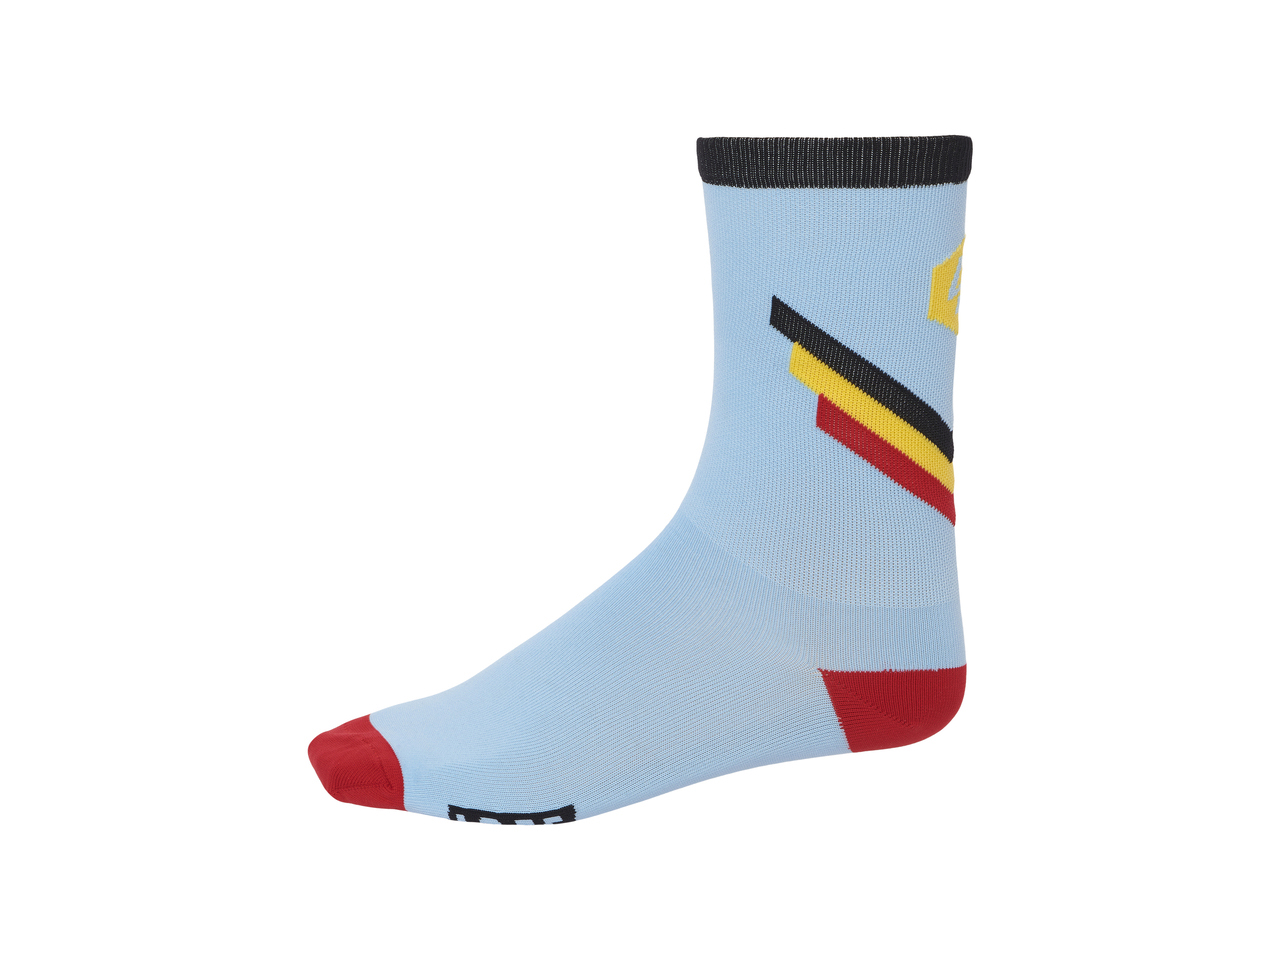 Lapierre Kwaremont cycling socks